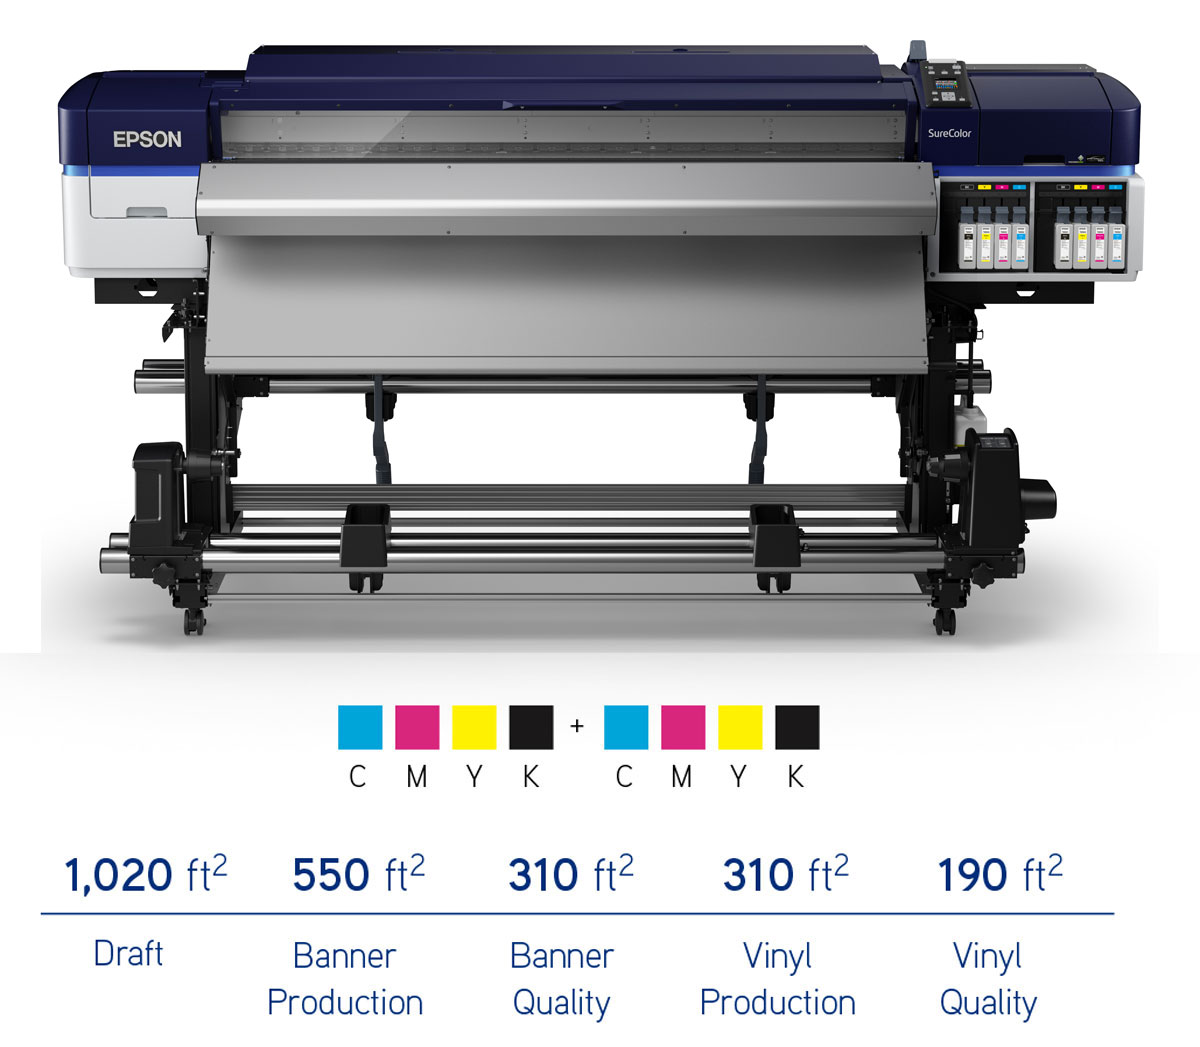 epson surecolor s60600 print cut edition showing ink colors and print speeds at different quality levels and pass modes